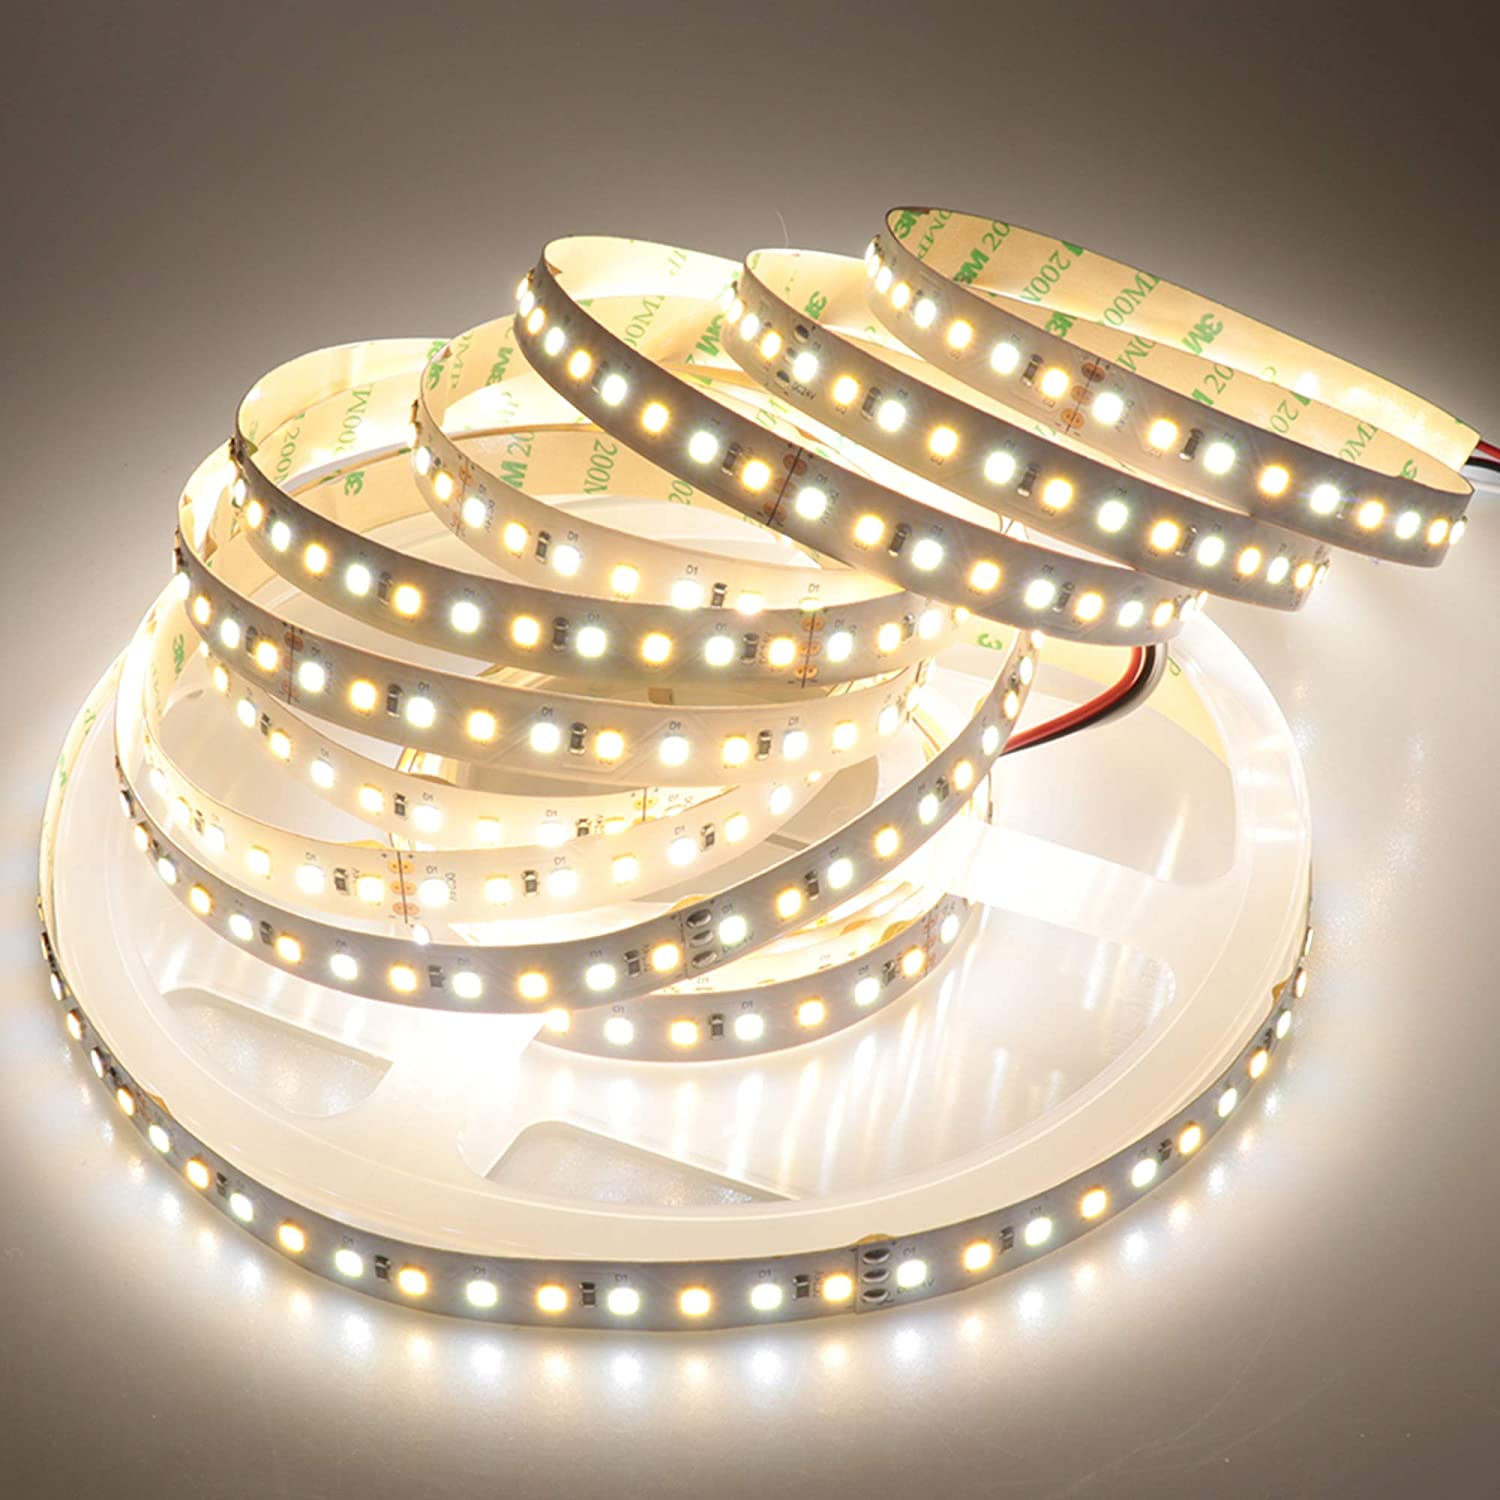 LTRGBW Super brillante no impermeable 2835 SMD 24 V 600 LEDs Luz de tira LED flexible blanca bicolor de color blanco doble 16.4 pies (5 m)